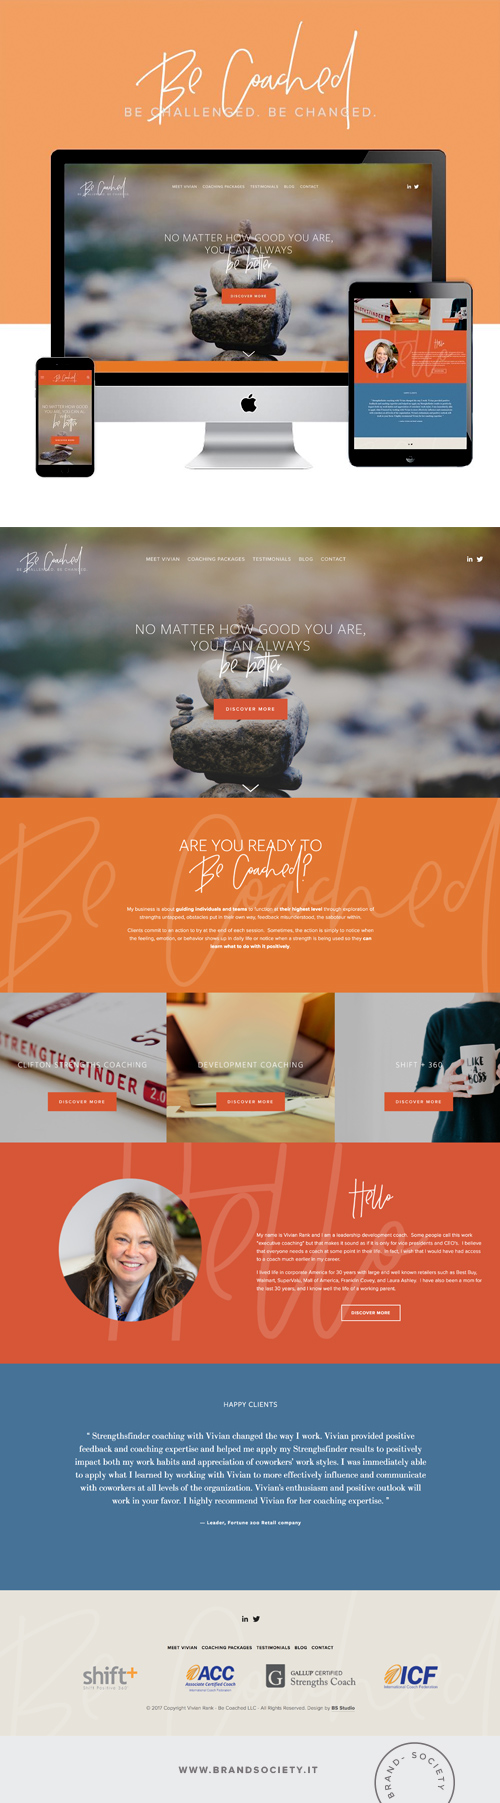 BE COACHED    SERVICES  || SQUARESPACE WEBSITE | BRANDING | CORPORATE DESIGN | COLOR PALETTE